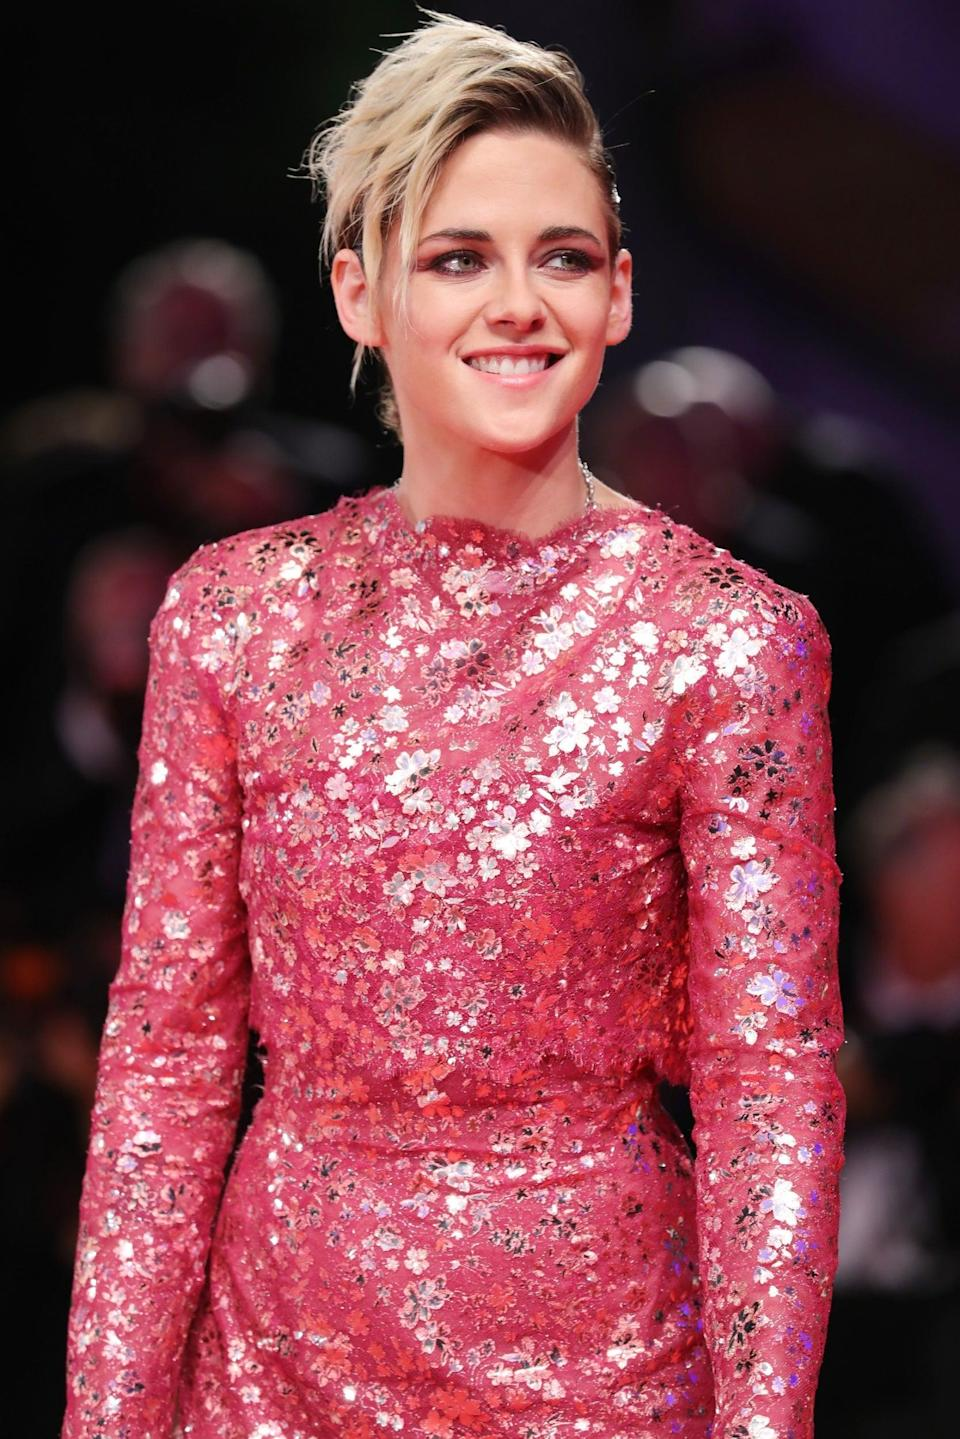 <p>Kristen Stewart</p>Getty Images